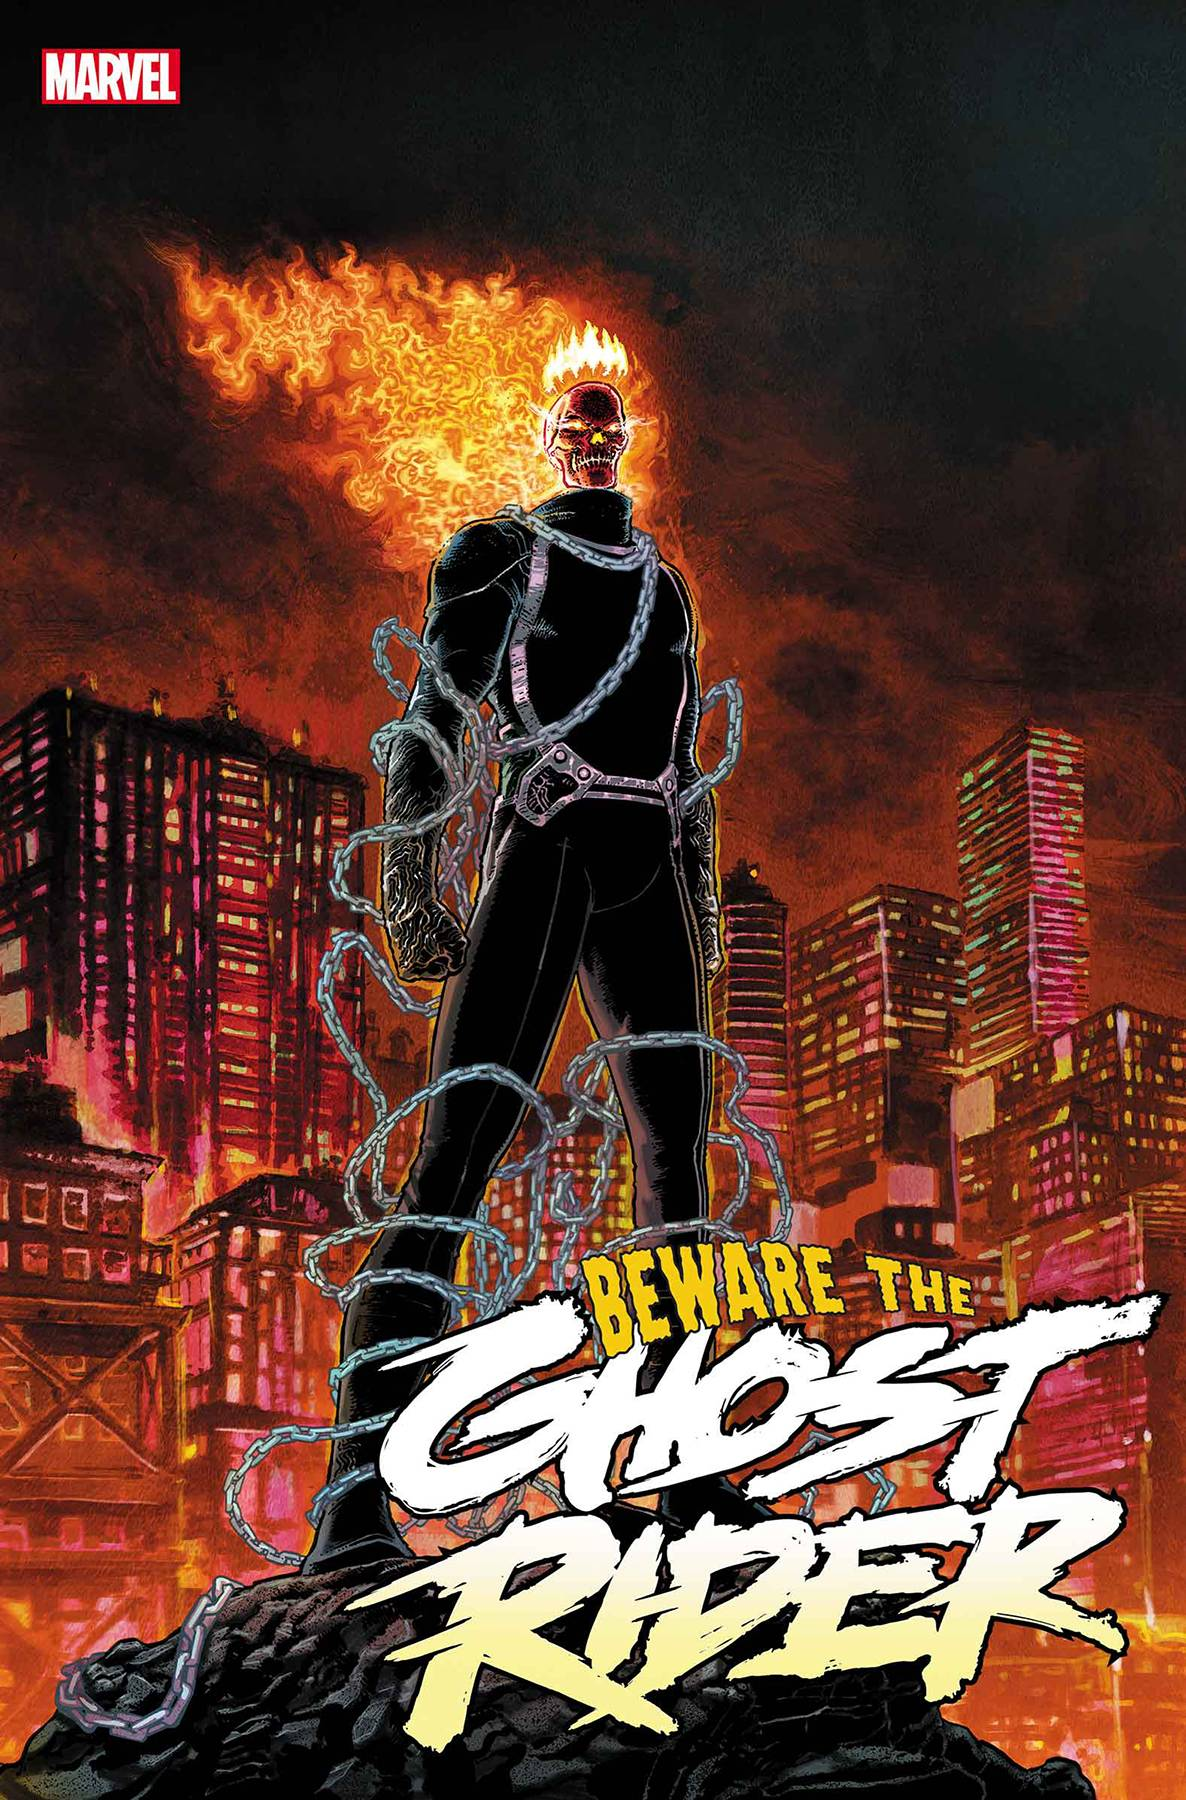 10/02/2019 GHOST RIDER #1 KING OF HELL KUDER VAR